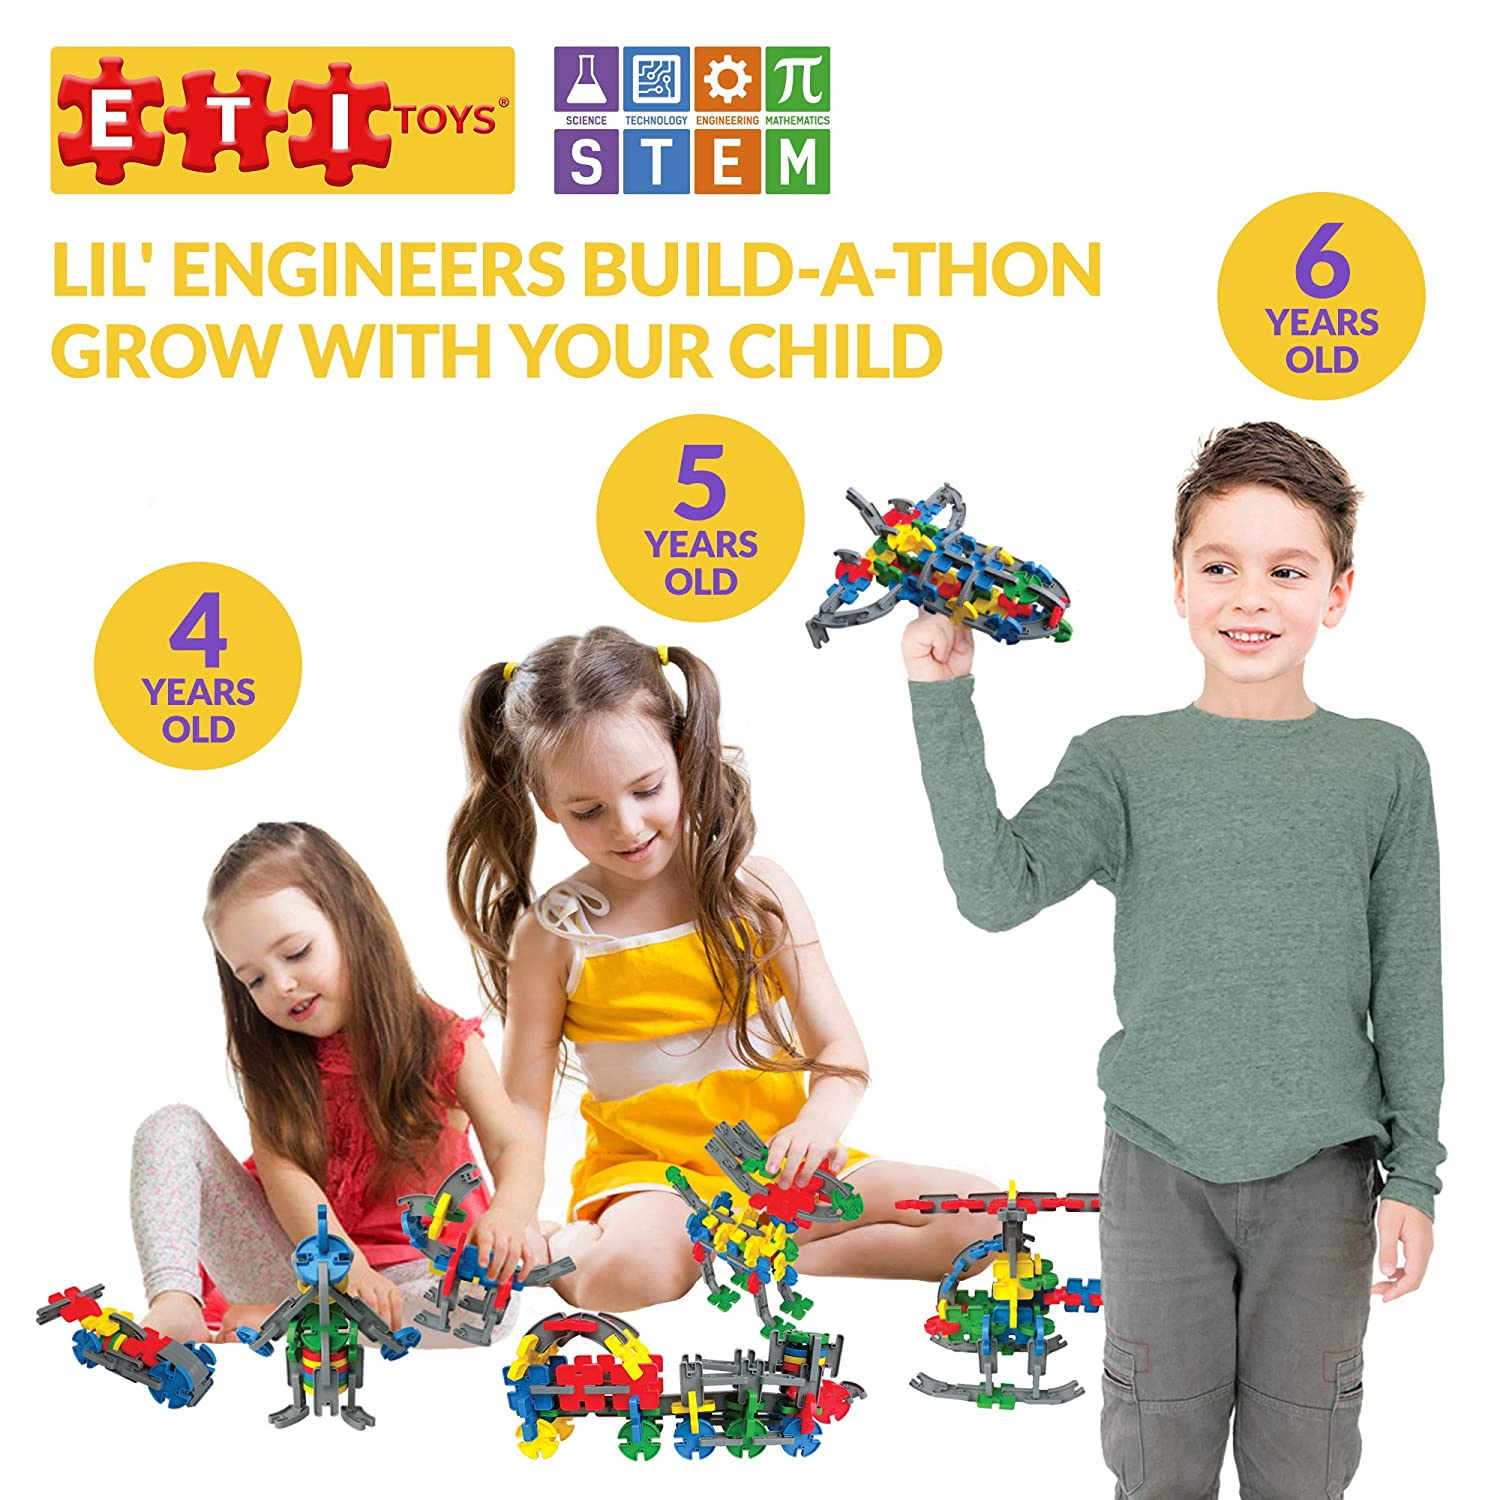 Toy for 4 100/% Non-Toxic STEM Learning 6 Year Old Boys and Girls 104 Piece Lil Engineers Build-A-Thon; Build Train 5 Rocket ETI Toys Endless Designs Motor Bike Creative Skills Development